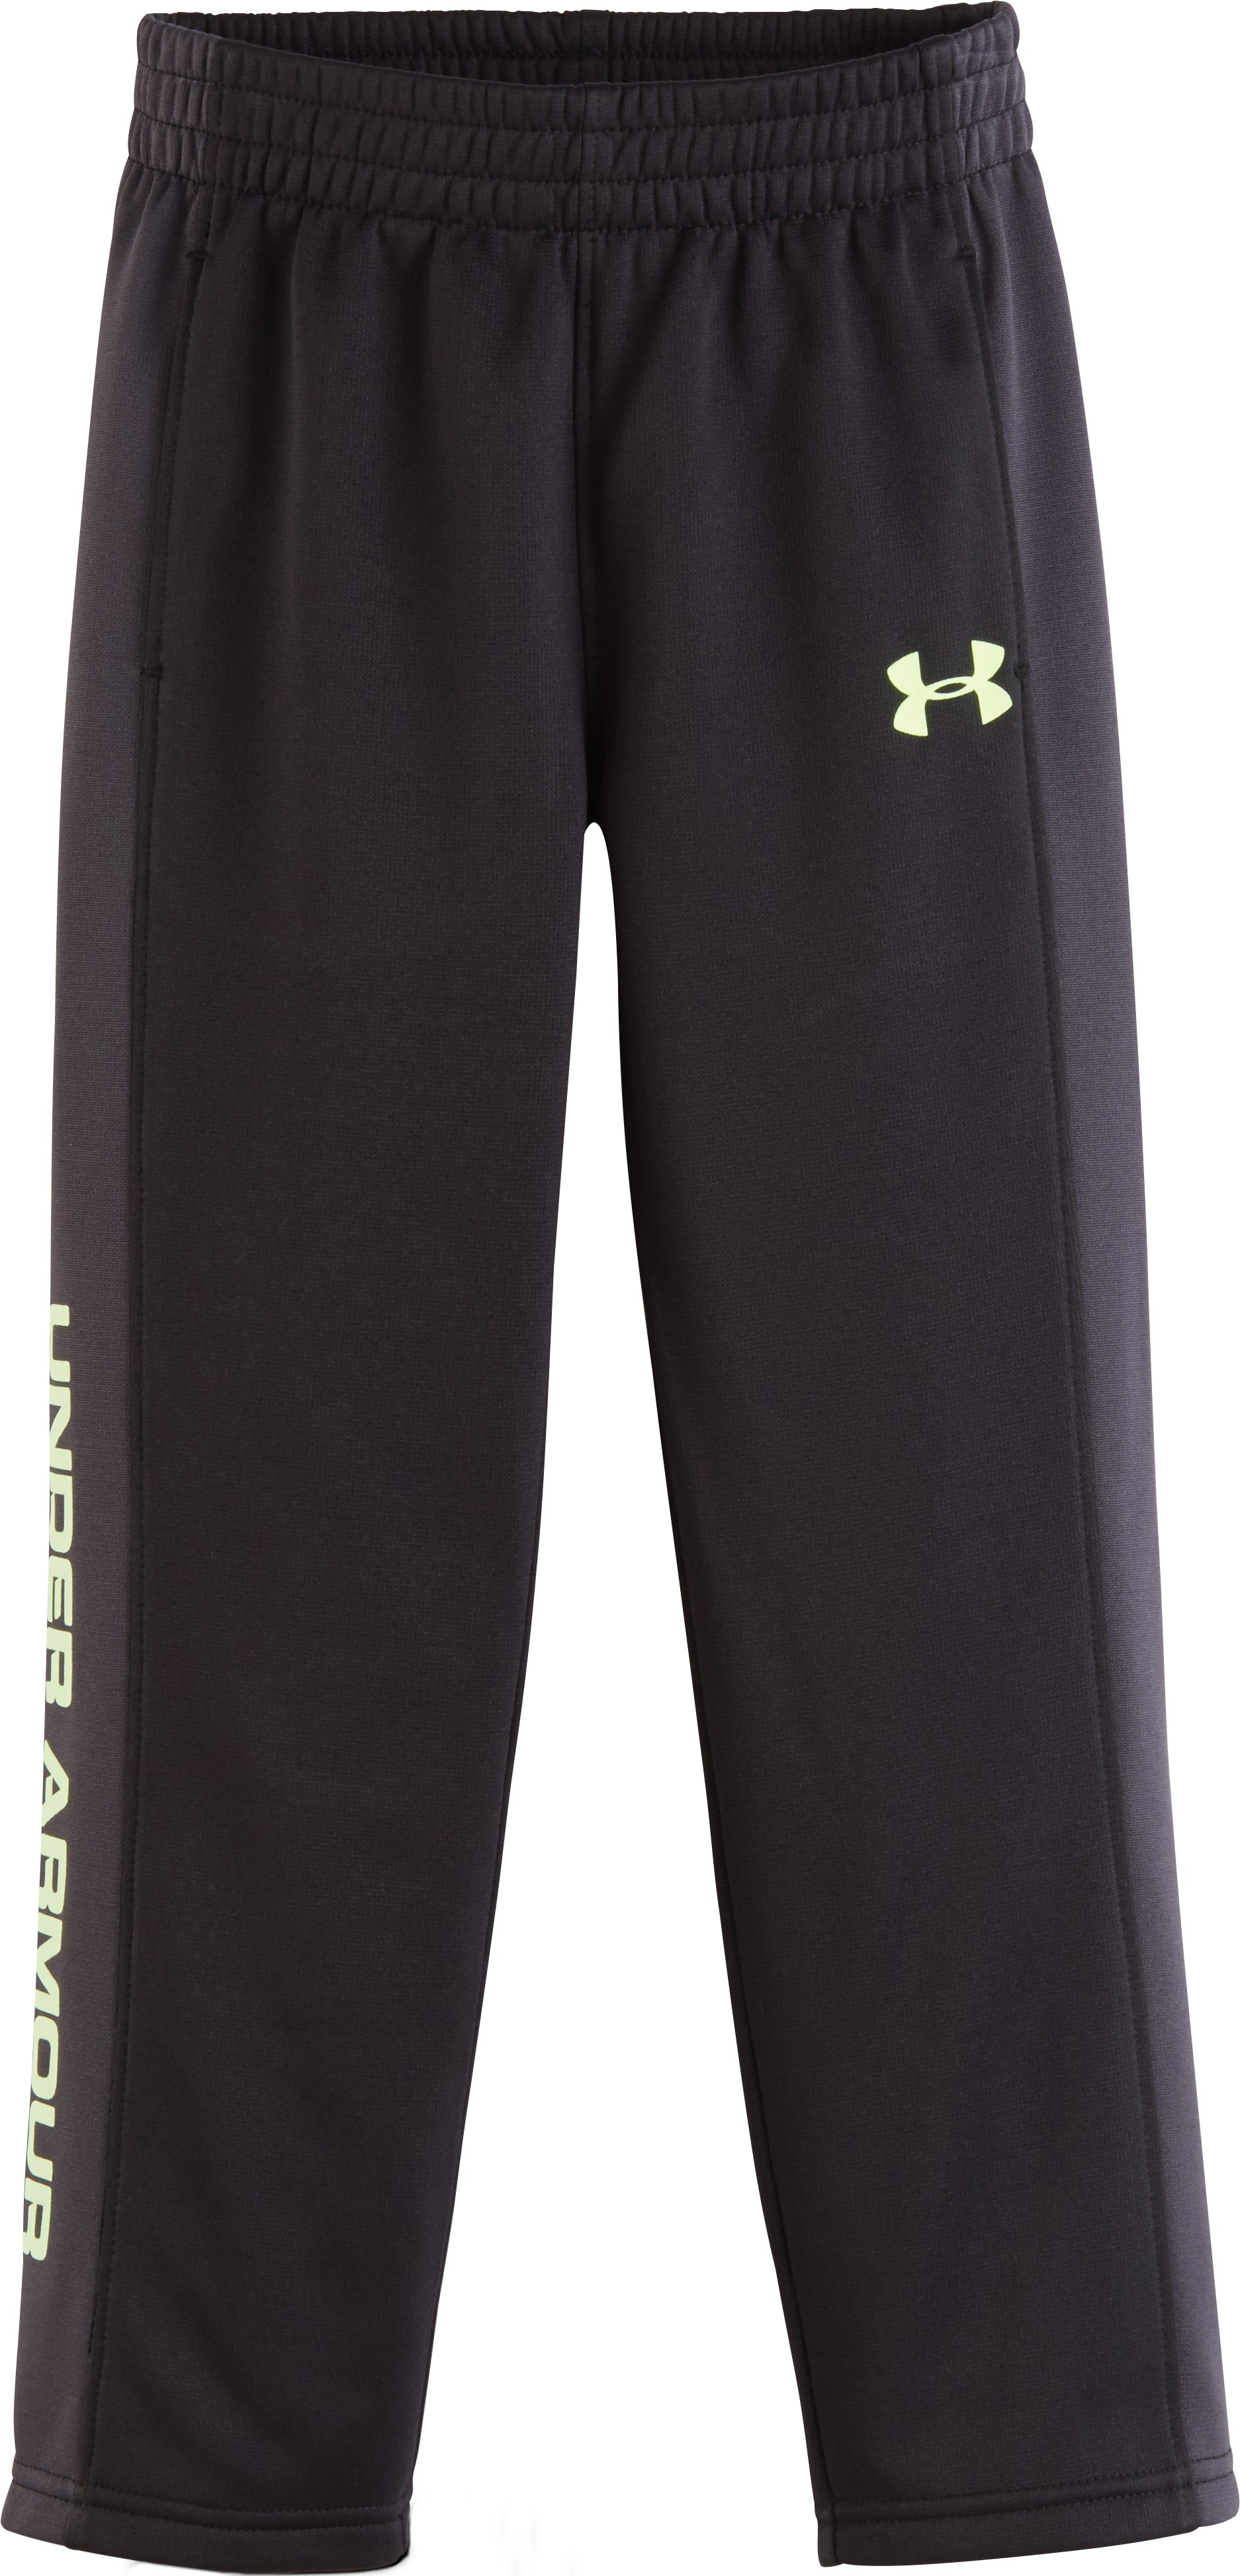 Boys' Pre-School UA Stampede Pants, Black